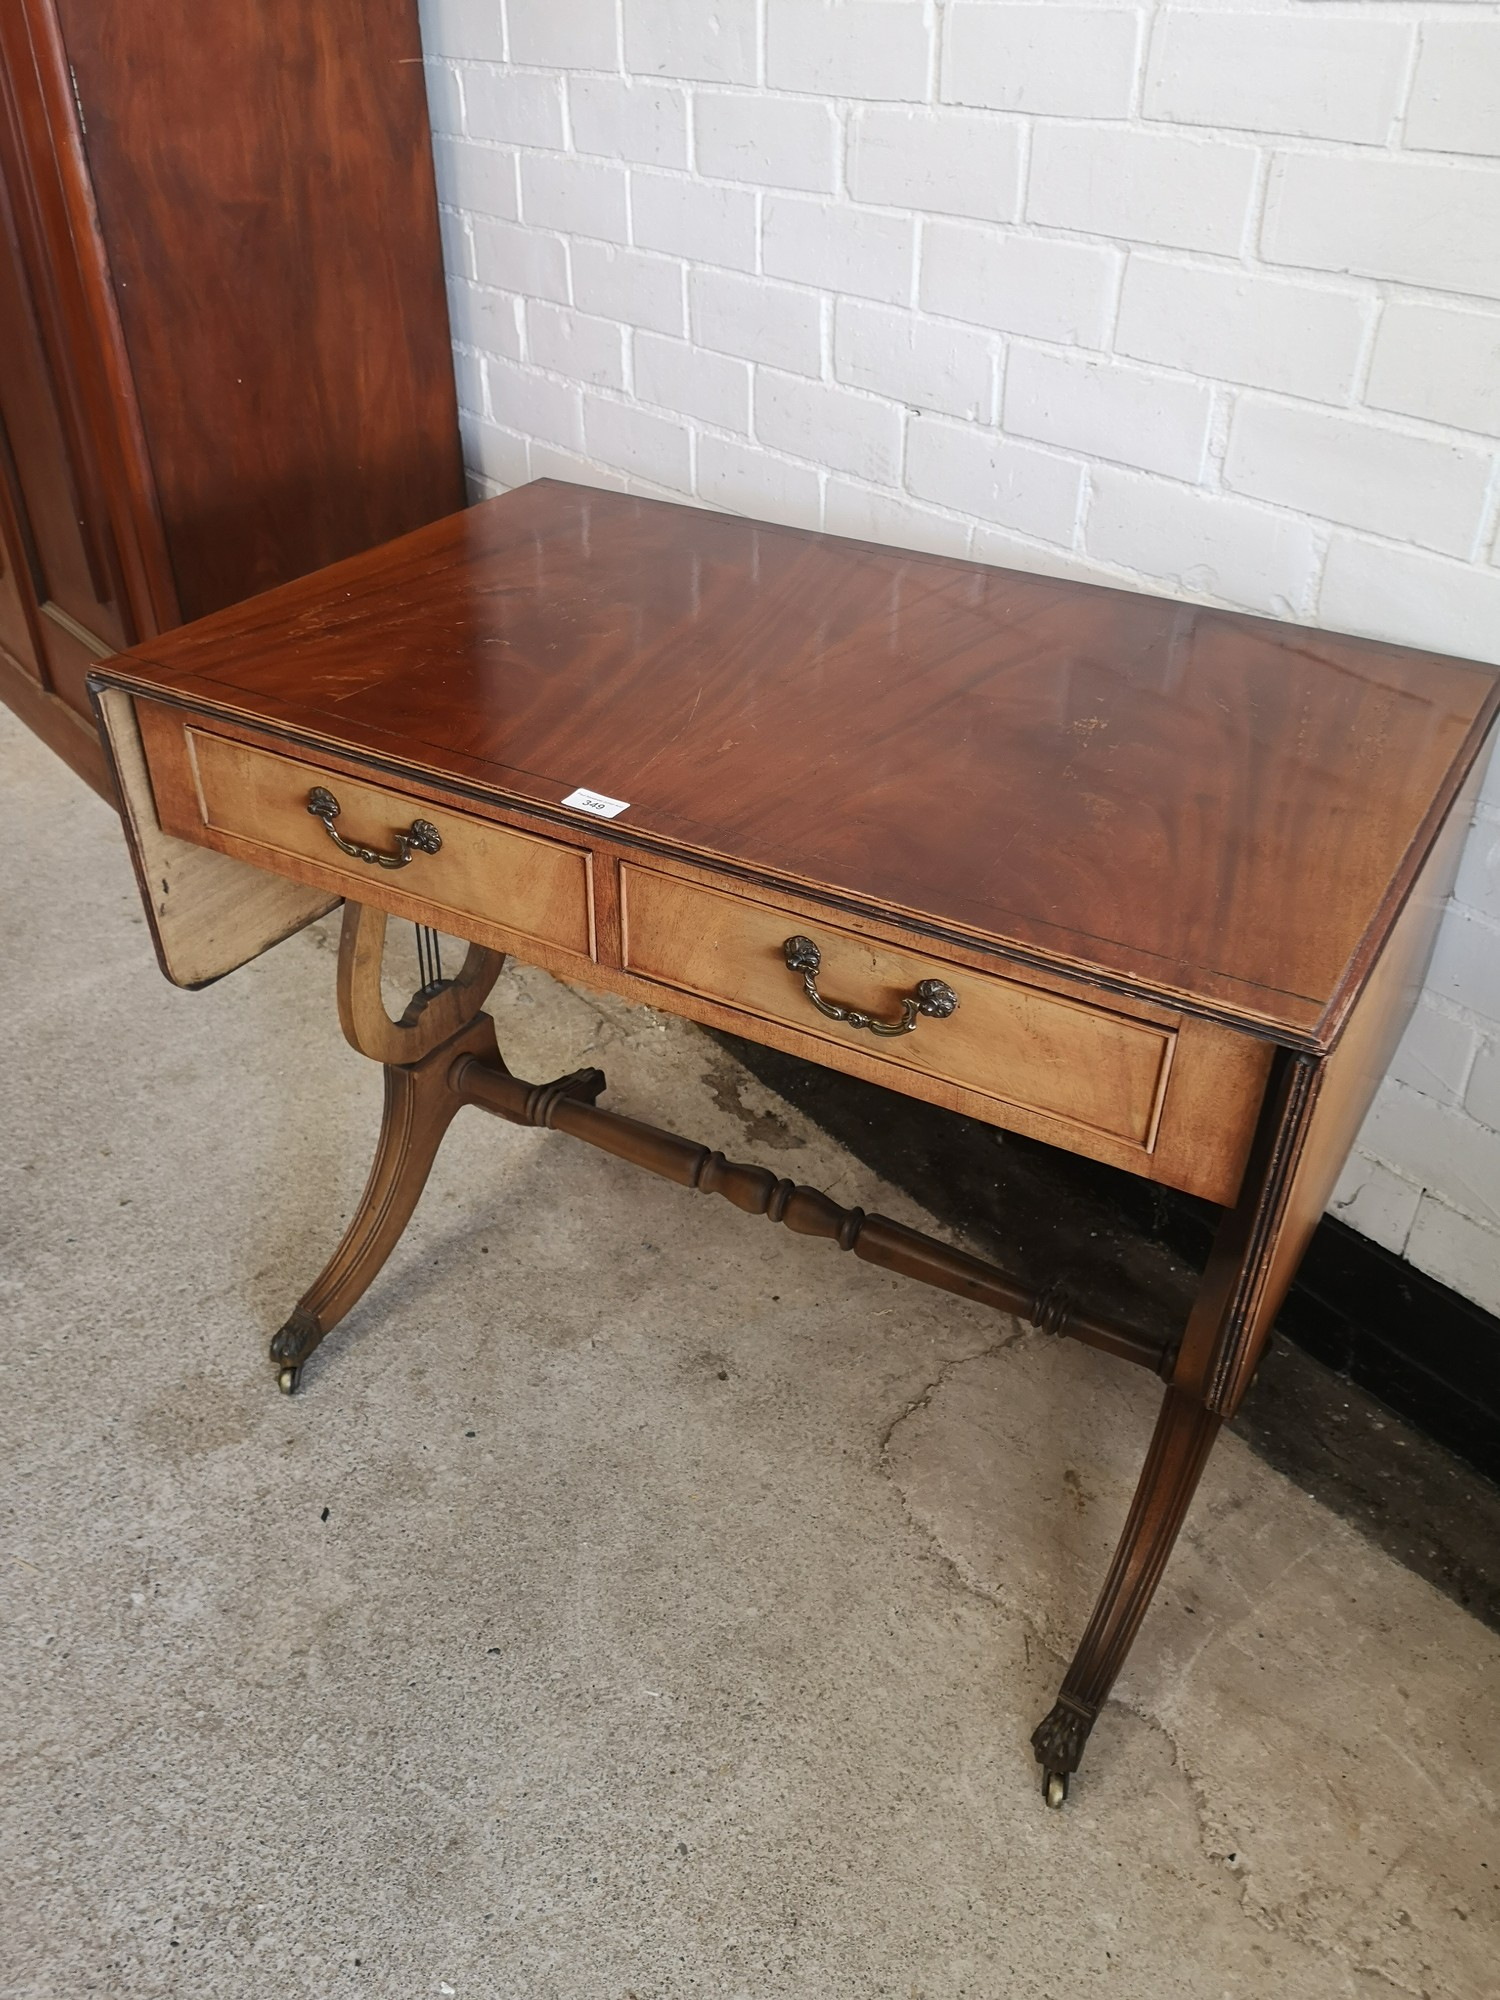 Reproduction drop leaf liar end table with 2 drawers. 5ft extended out with leafs in length. - Image 2 of 7